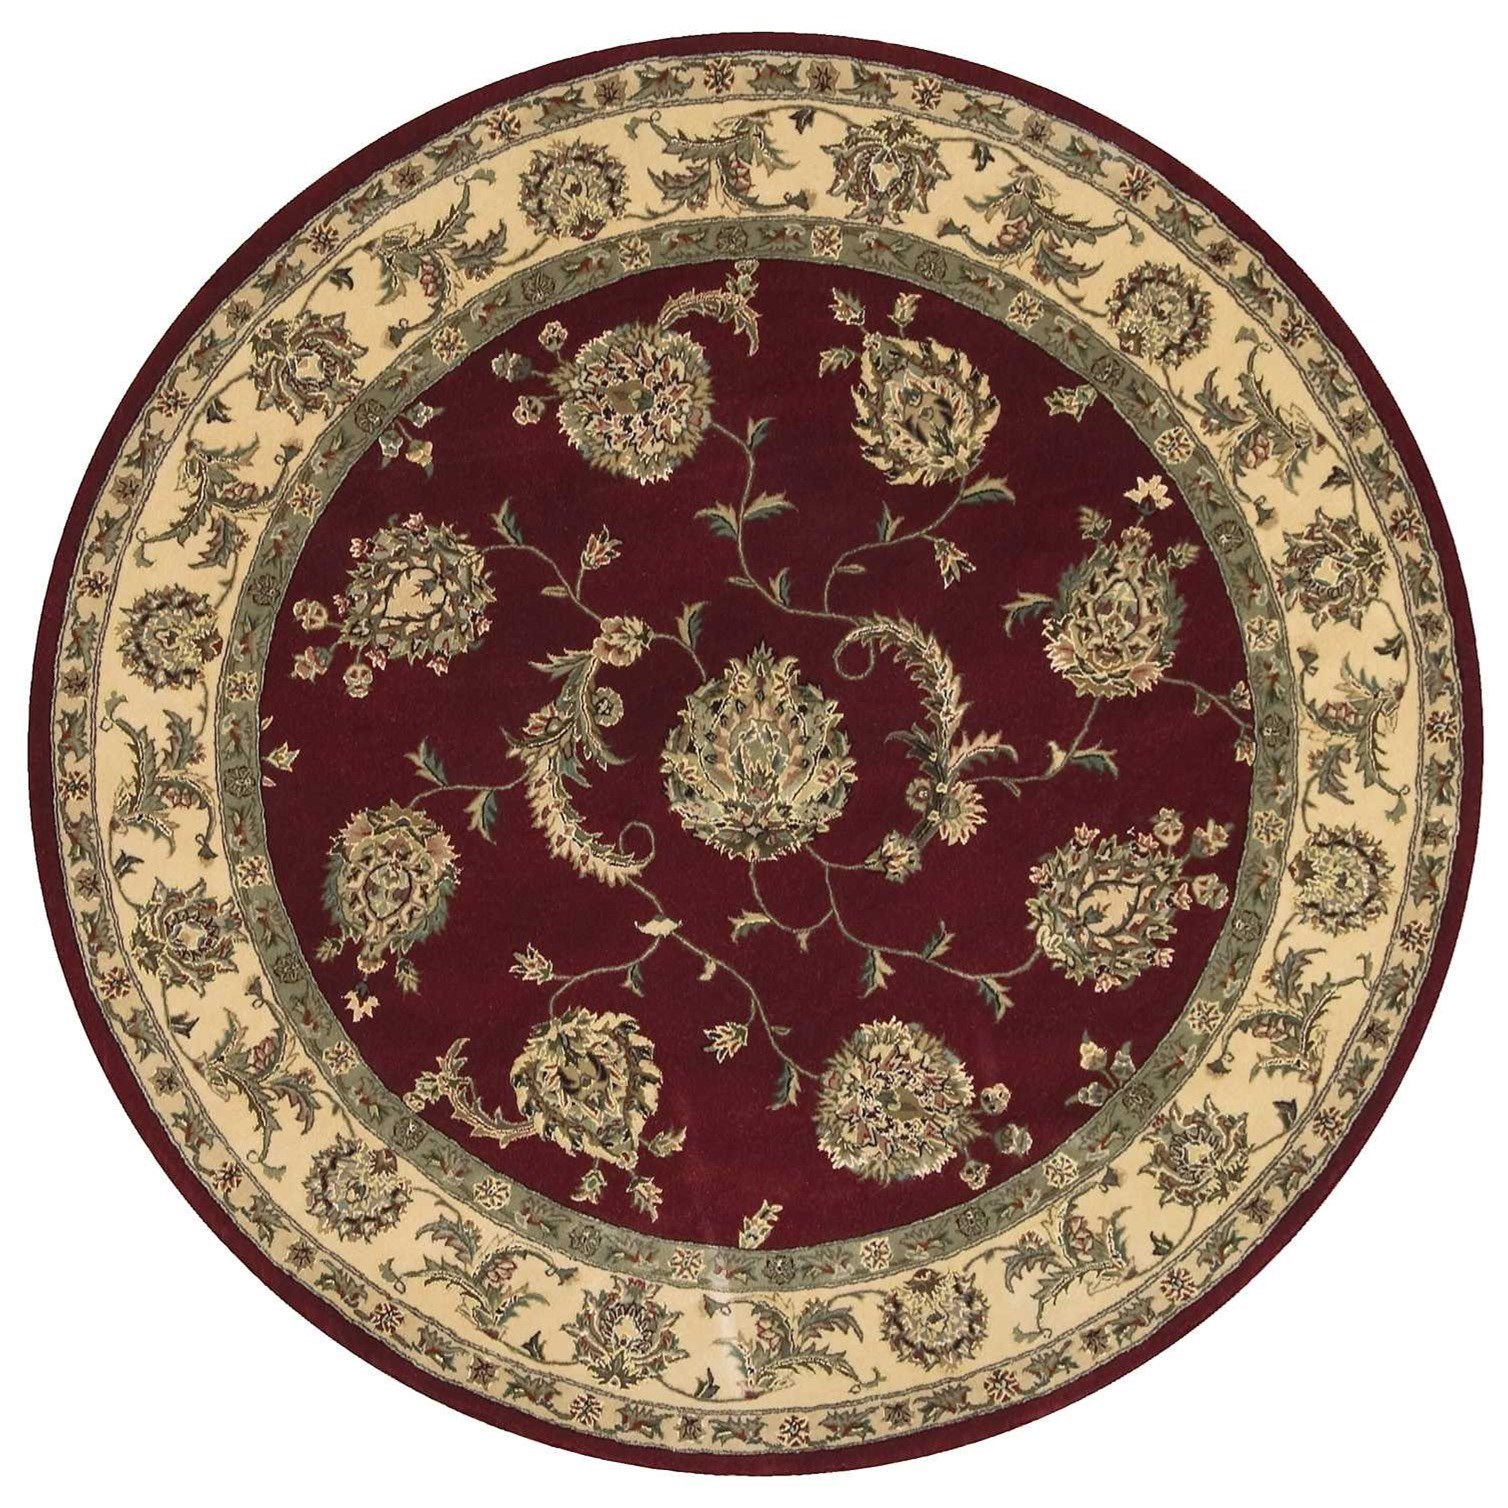 Nourison 2000 2000 2022 Lacquer 6' Round  Area Rug by Nourison at Home Collections Furniture